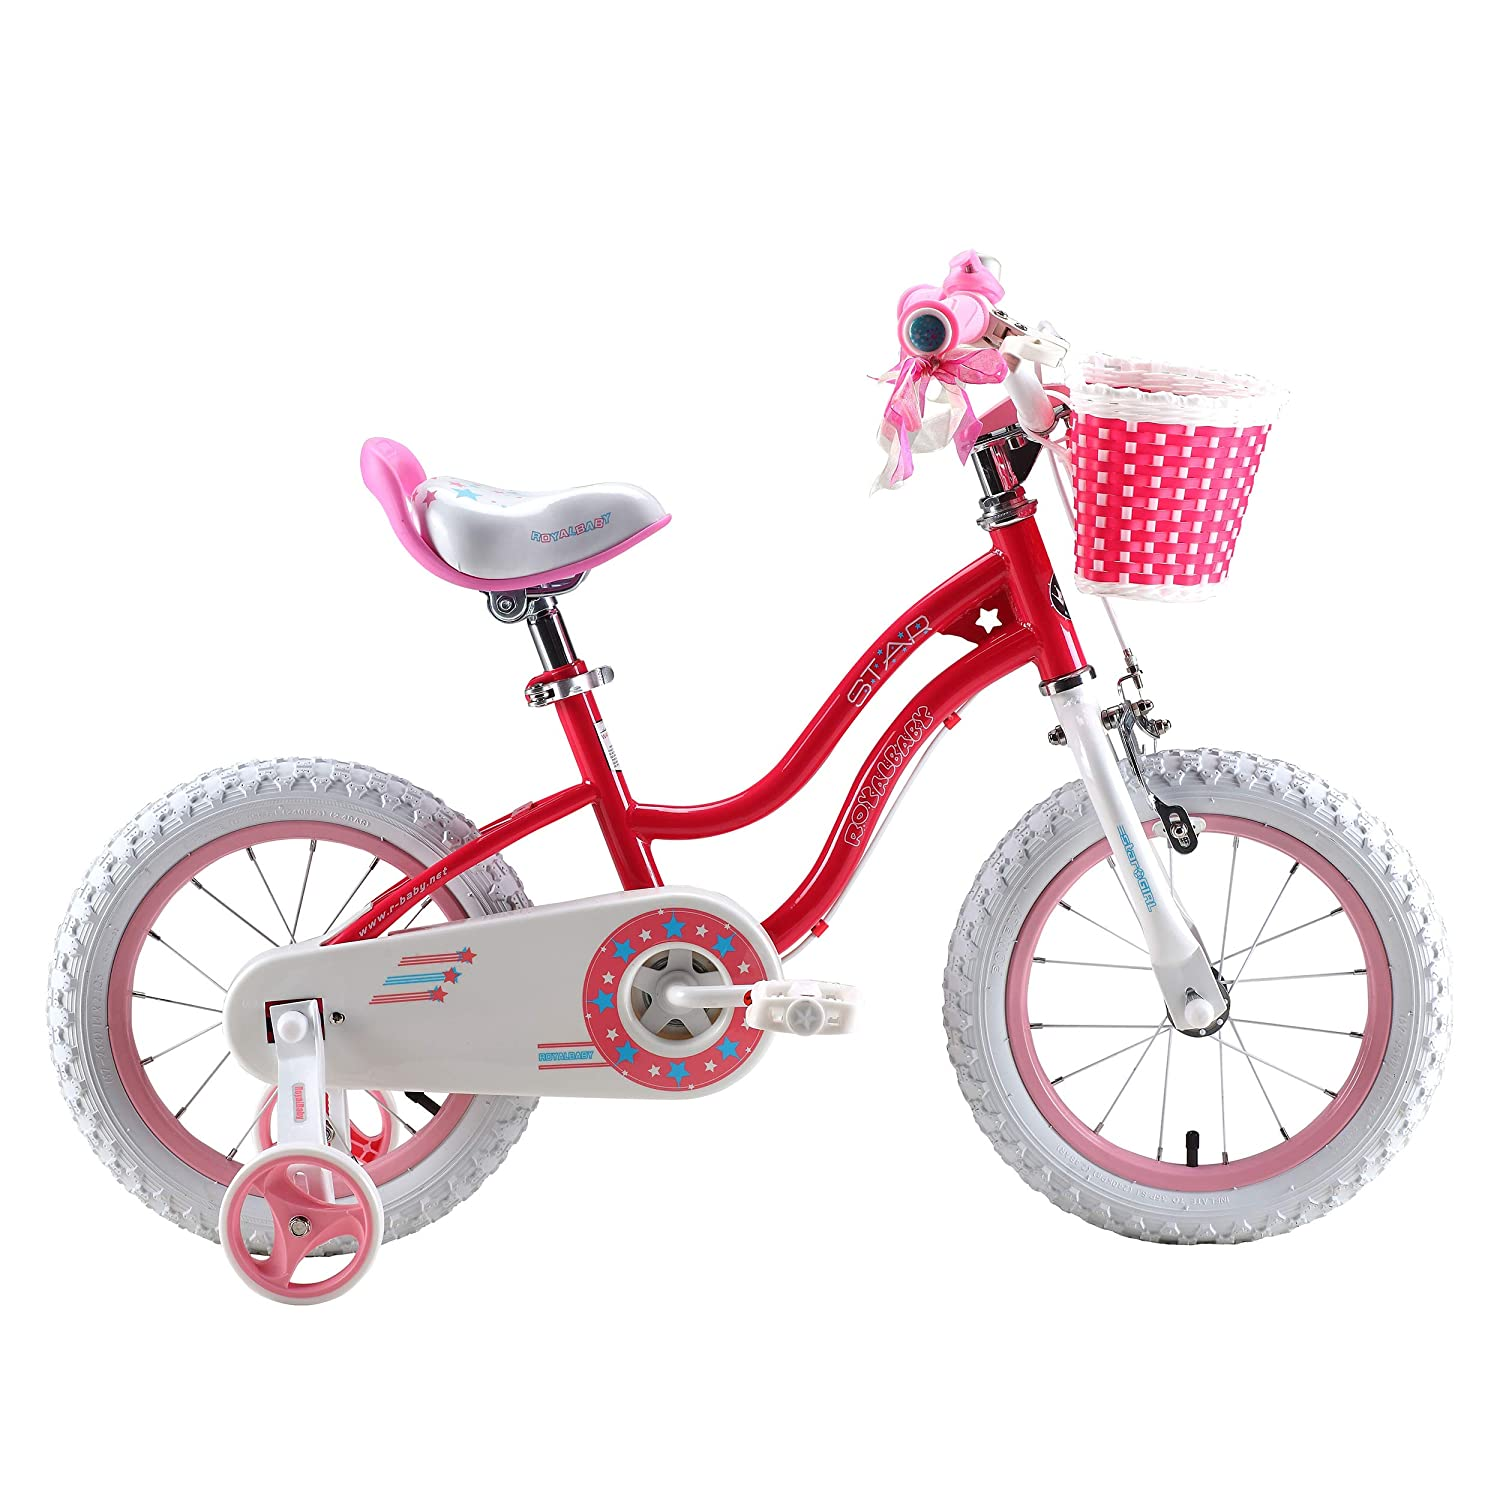 RoyalBaby Stargirl Girl's Bike, Best Gifts for Girls. (Blue 12 Inch) Cycle Force Group RB12G-1B